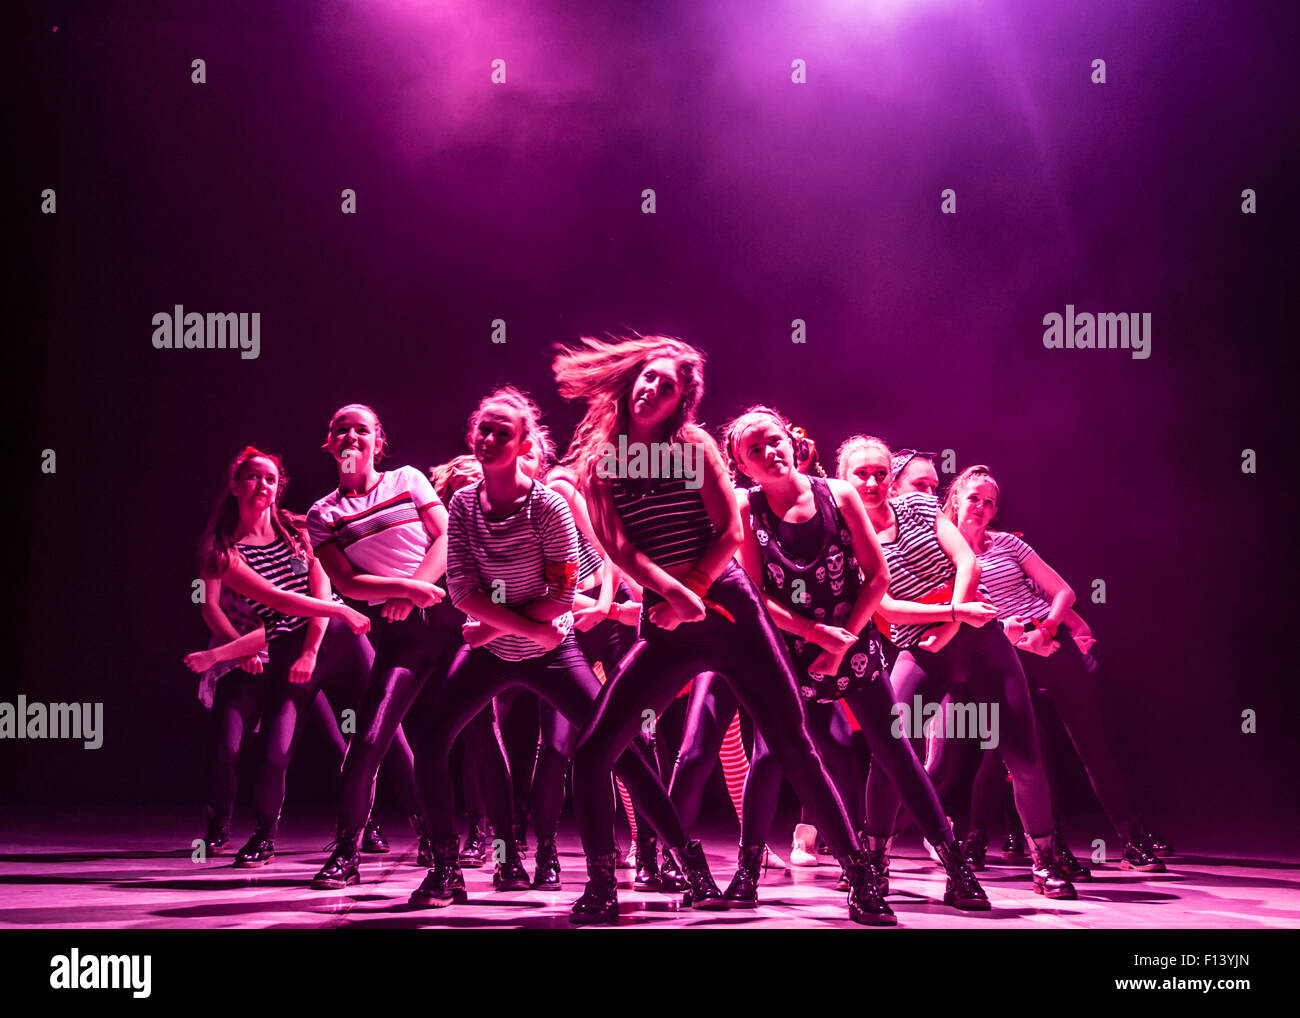 A group of young teenage girl student modern dance dancers at Aberystwyth Arts Centre  Dance School dancing on stage - Stock Image